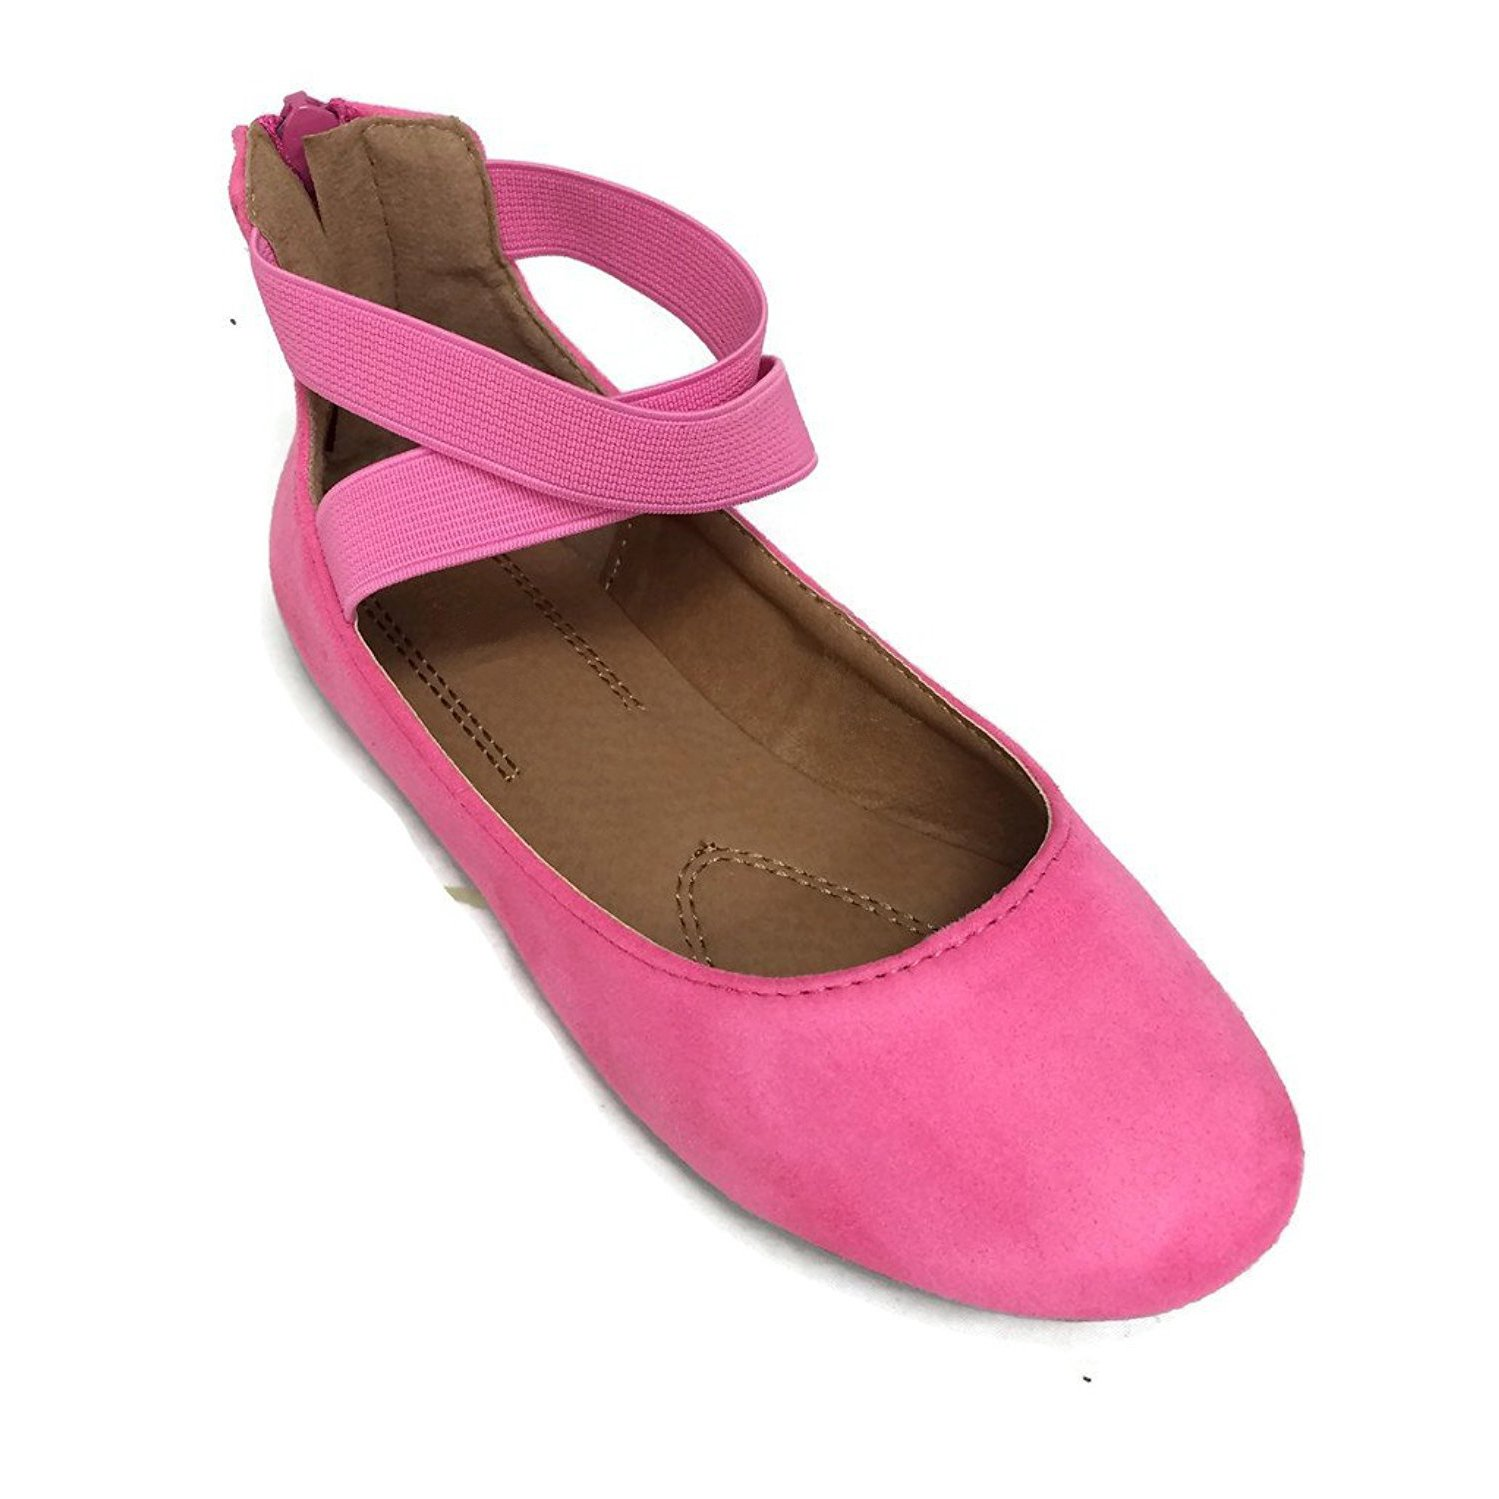 Anna Girl Kids Dress Ballet Flat Elastic Ankle Strap Comfortable Ballerina FUCHSIA Synthetic Suede Shoes 12 US Little Kid